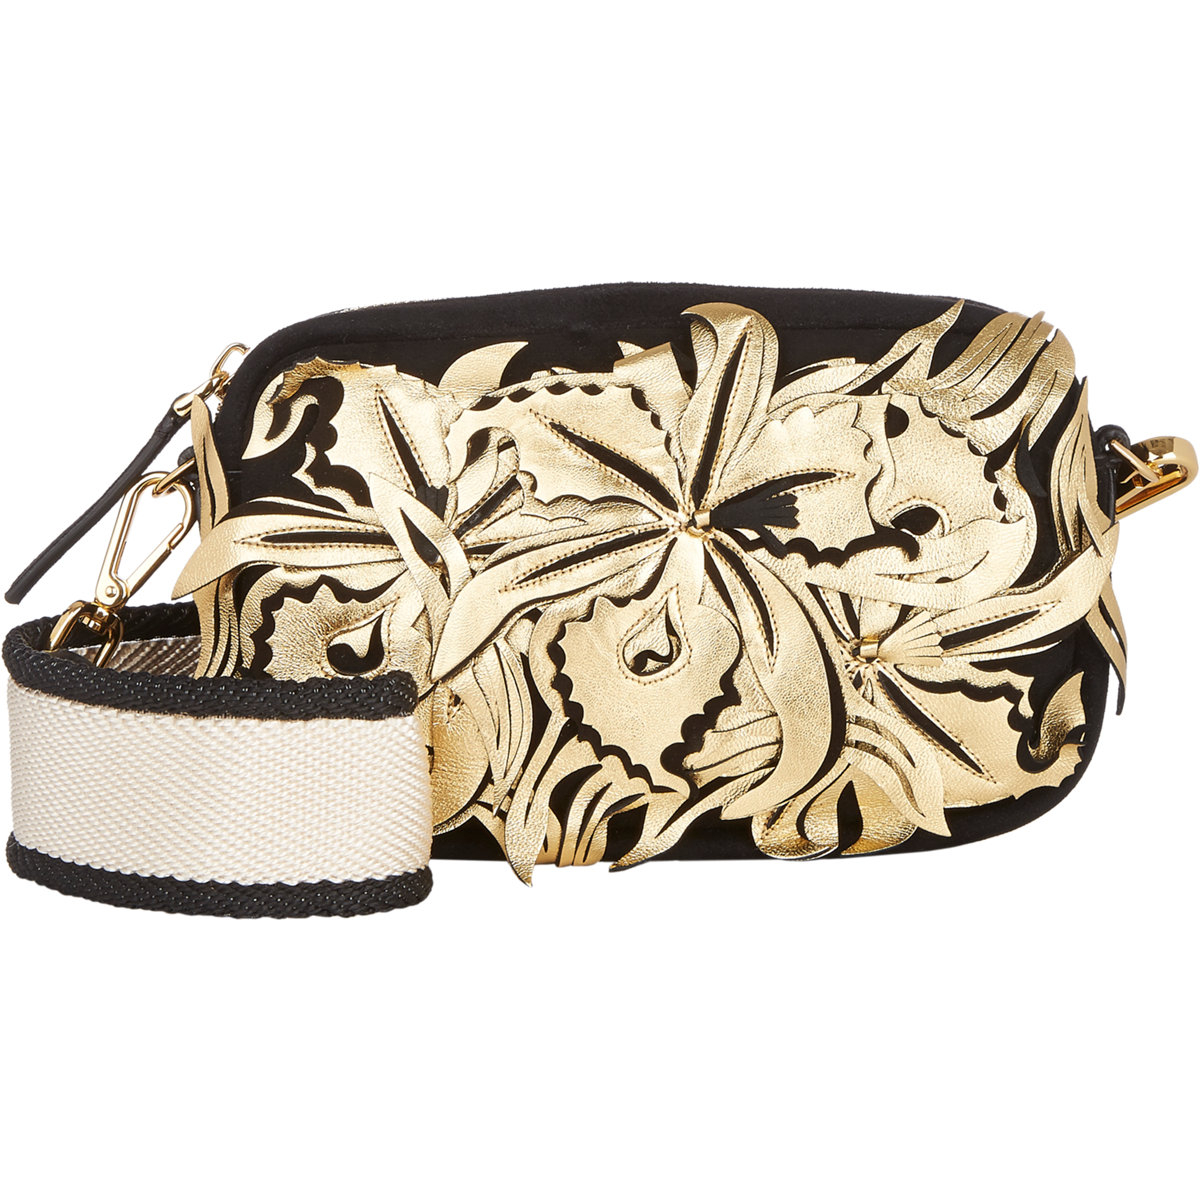 Marni Flower Applique Camera Bag In Metallic | Lyst